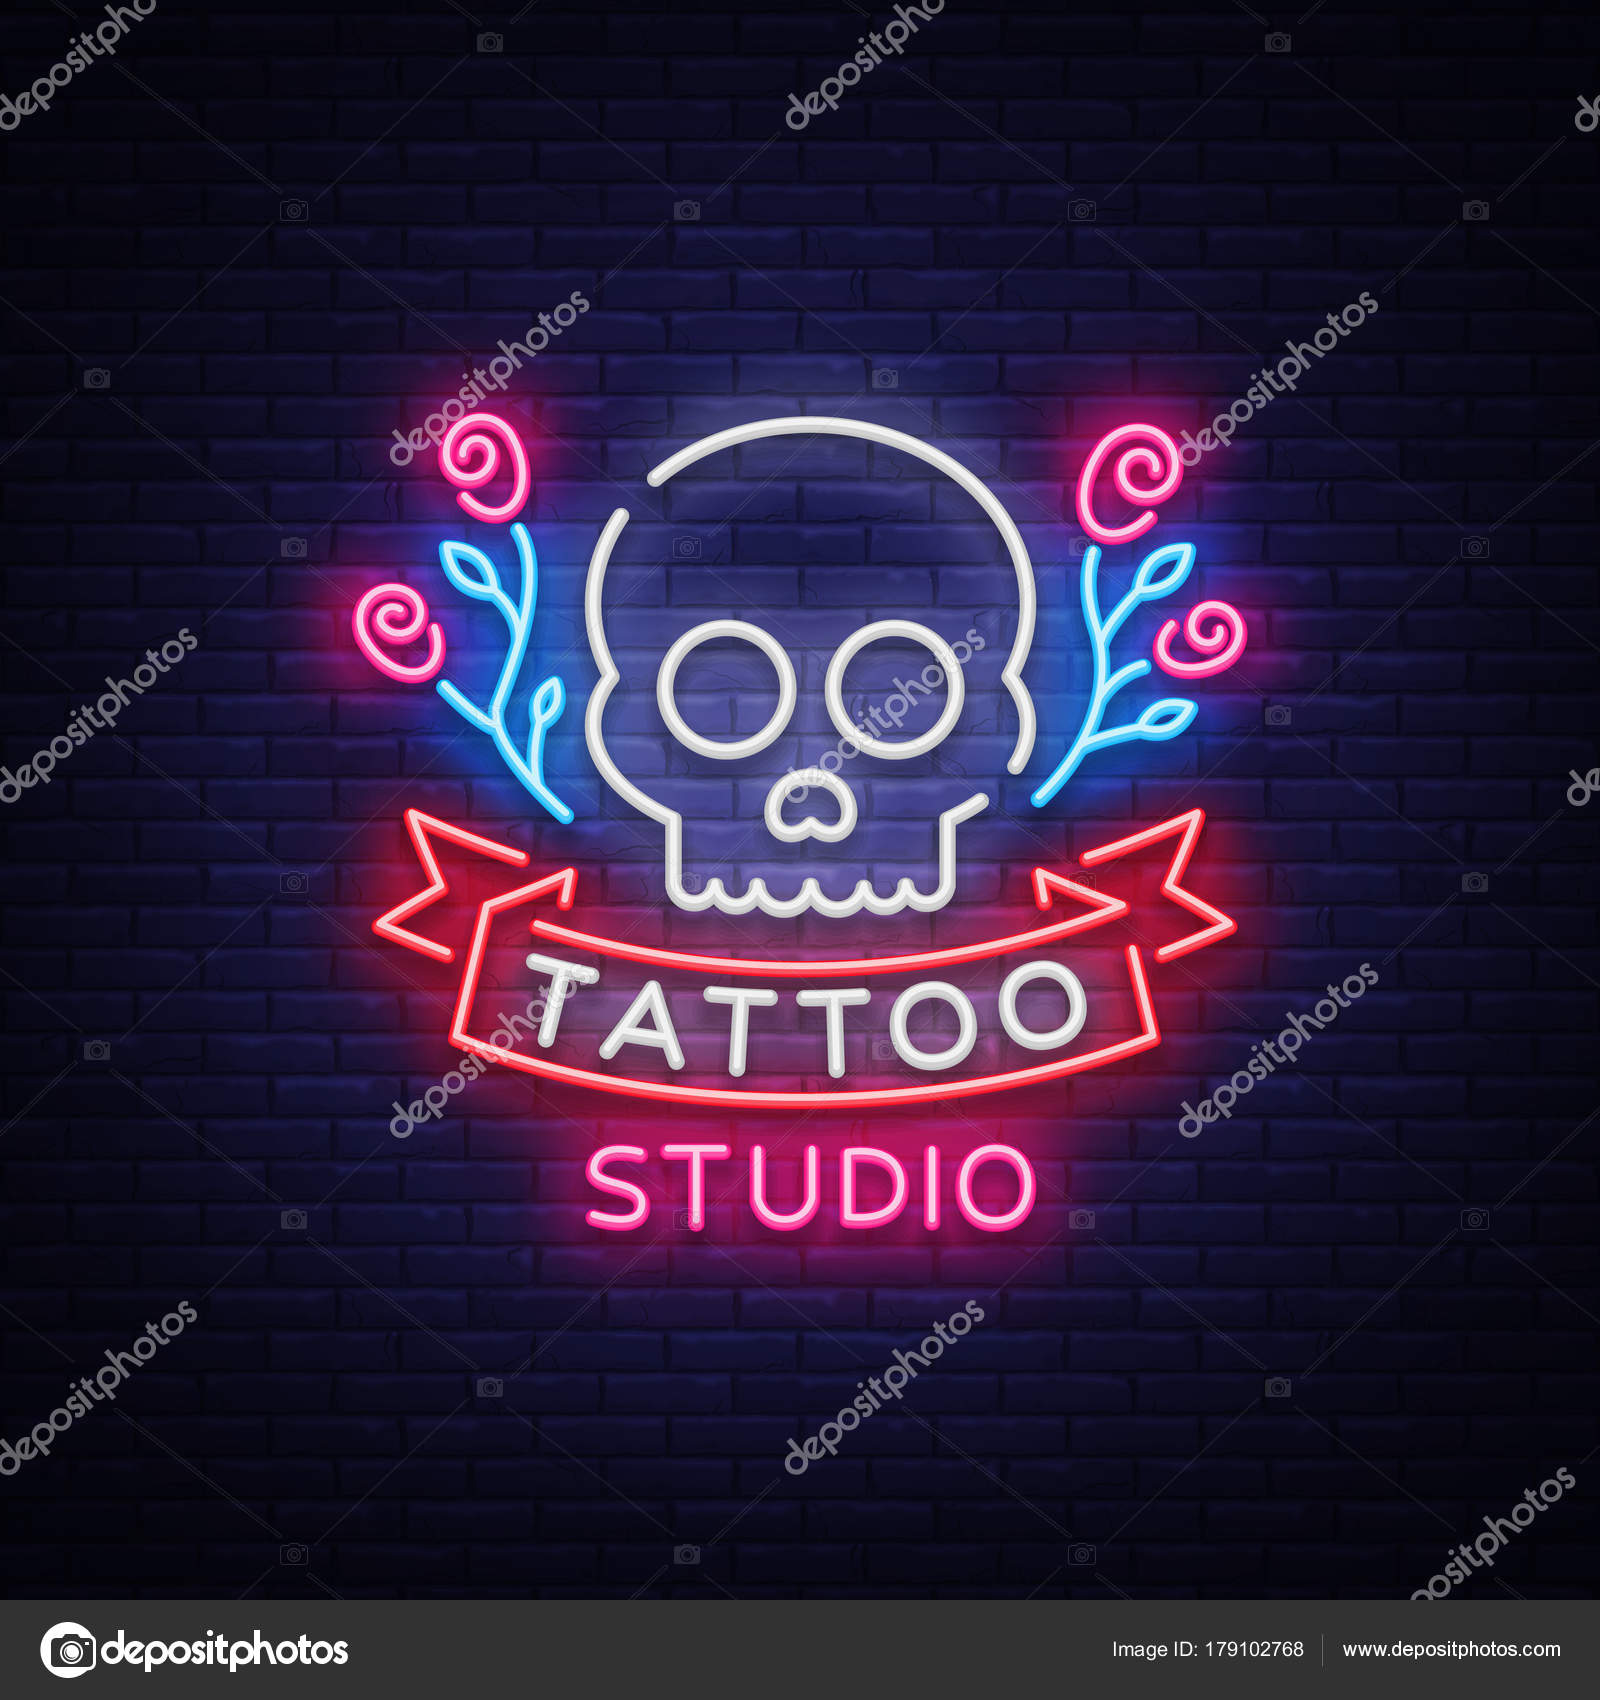 Tattoo salon logo vector neon sign a symbol of a skull with neon sign a symbol of a skull with roses a bright luminous billboard a night banner neon bright advertising on a theme of a tattoo buycottarizona Images